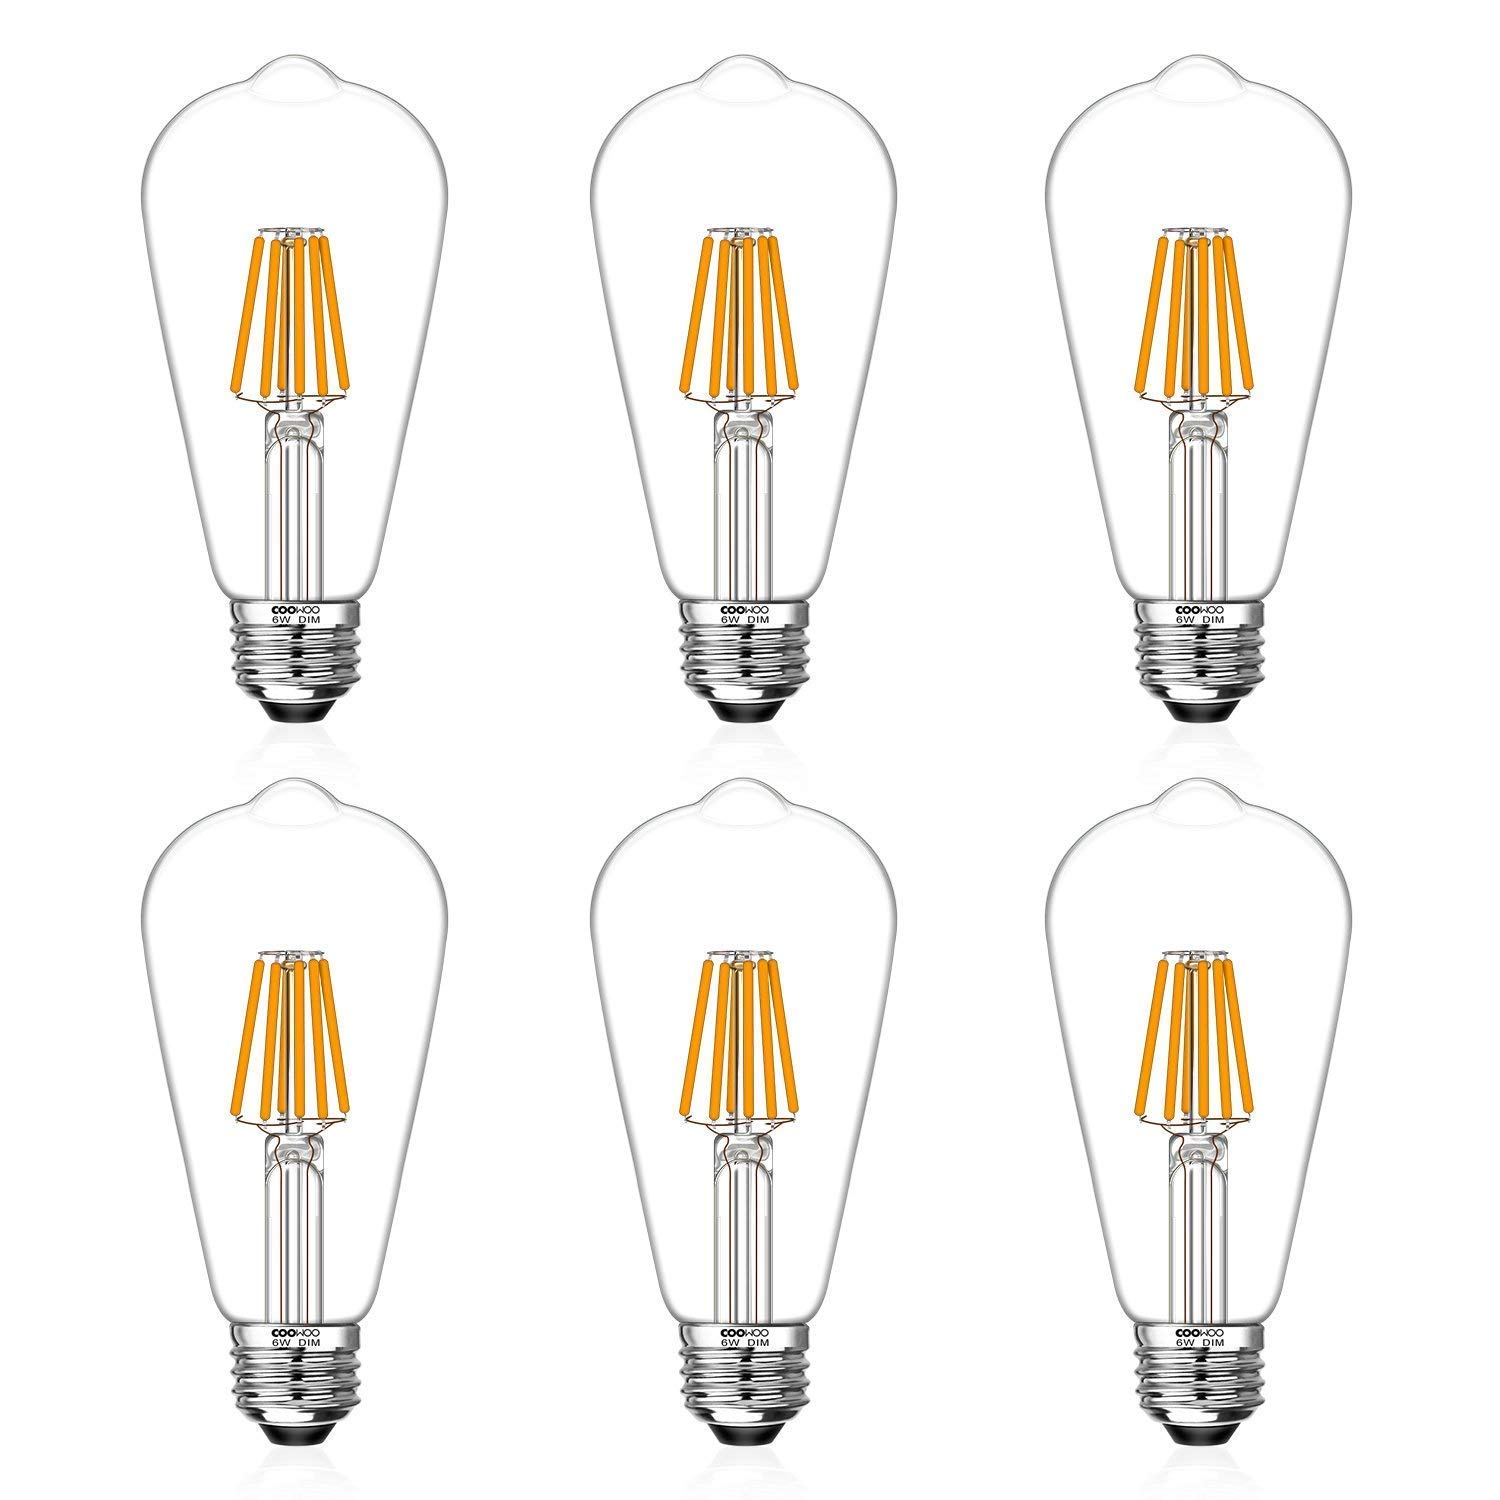 LED Edison Light Bulbs 60W Equivalent Halogen Replacement Dimmable E26 Base Vintage Filament Pendant Light Bulbs 2200K Amber Glow 6W UL-Listed Commercial Island Light Bulbs with 600lm 6 Pack by COOWOO